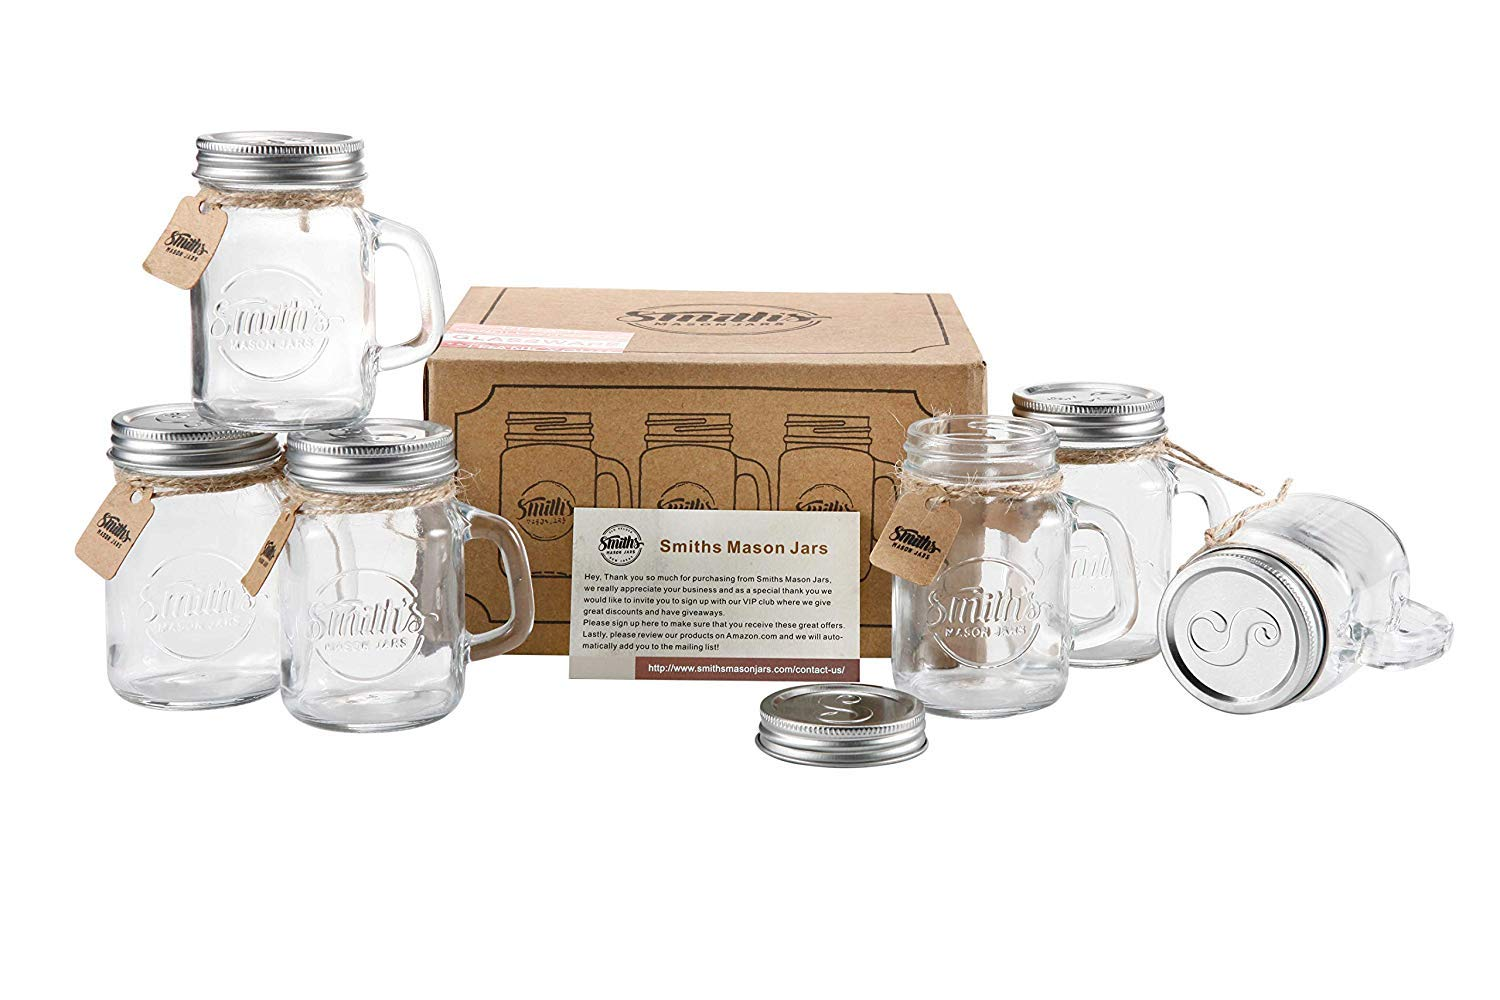 Smiths Mason Jars Mini Mason Jar Shot Glasses Set Of 6 Shot Glasses 120 Ml Each Great For Food Storage Canning Shot Glasses And With A Great Gift